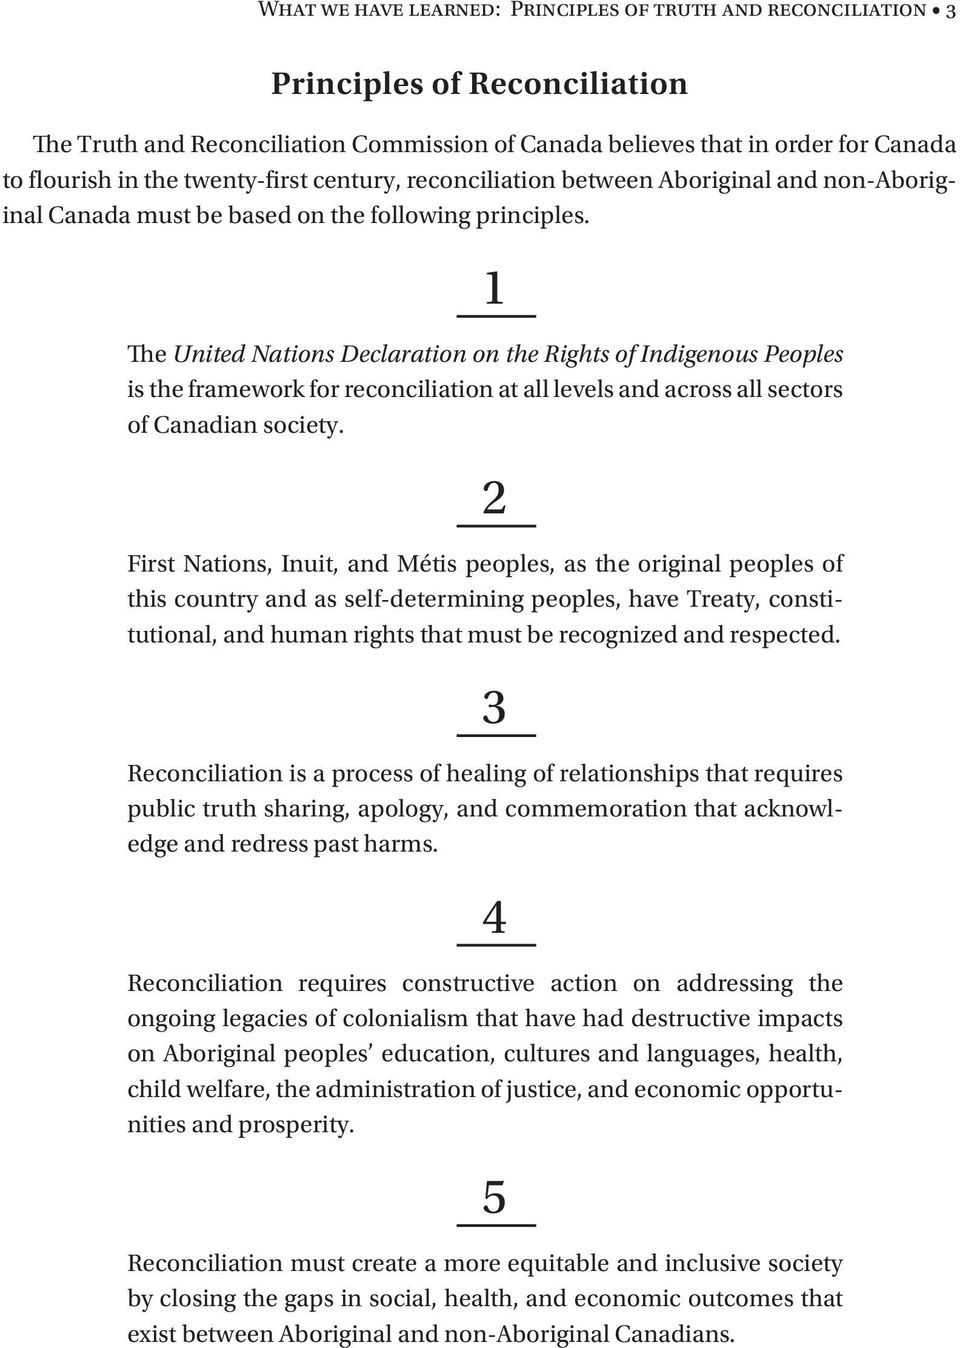 1 The United Nations Declaration on the Rights of Indigenous Peoples is the framework for reconciliation at all levels and across all sectors of Canadian society.